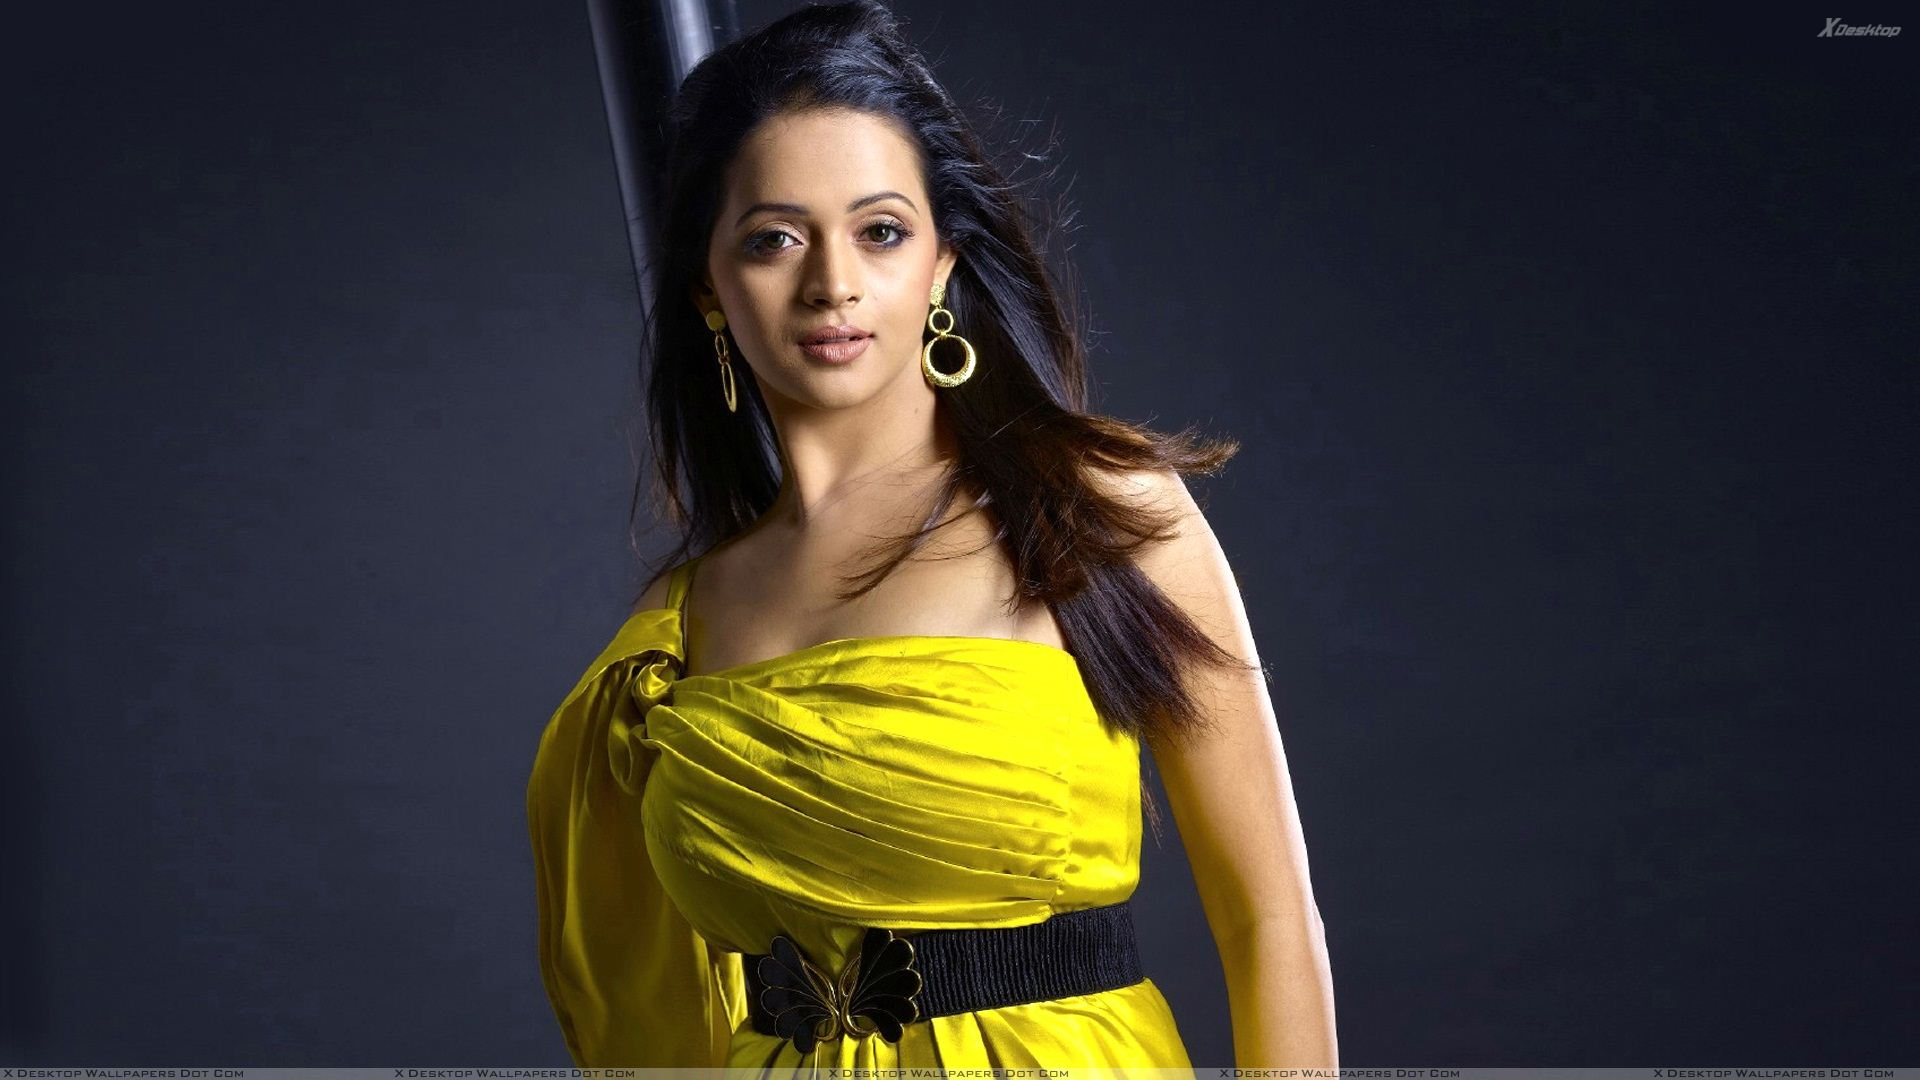 Bhavana Wallpapers High Resolution And Quality Download